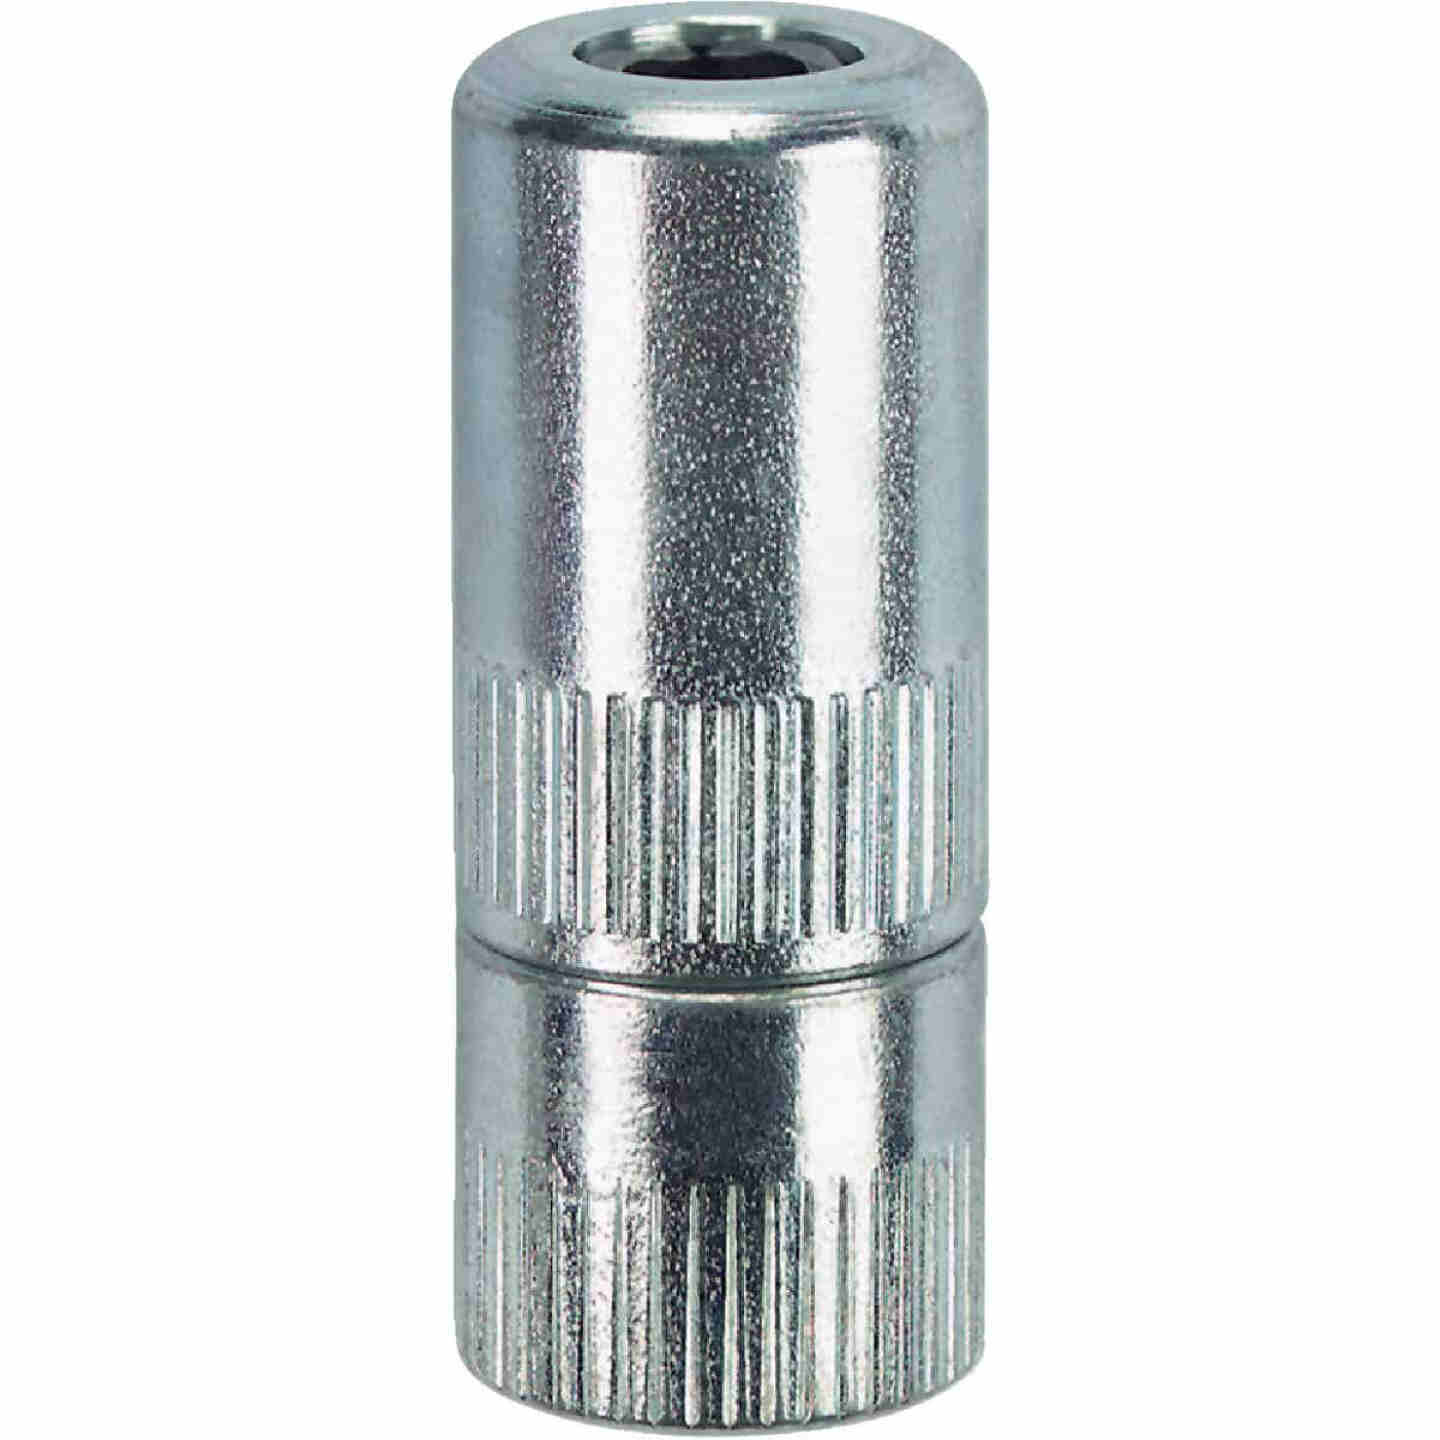 "Plews Lubrimatic Straight 1/8"" Grease Fitting Image 1"